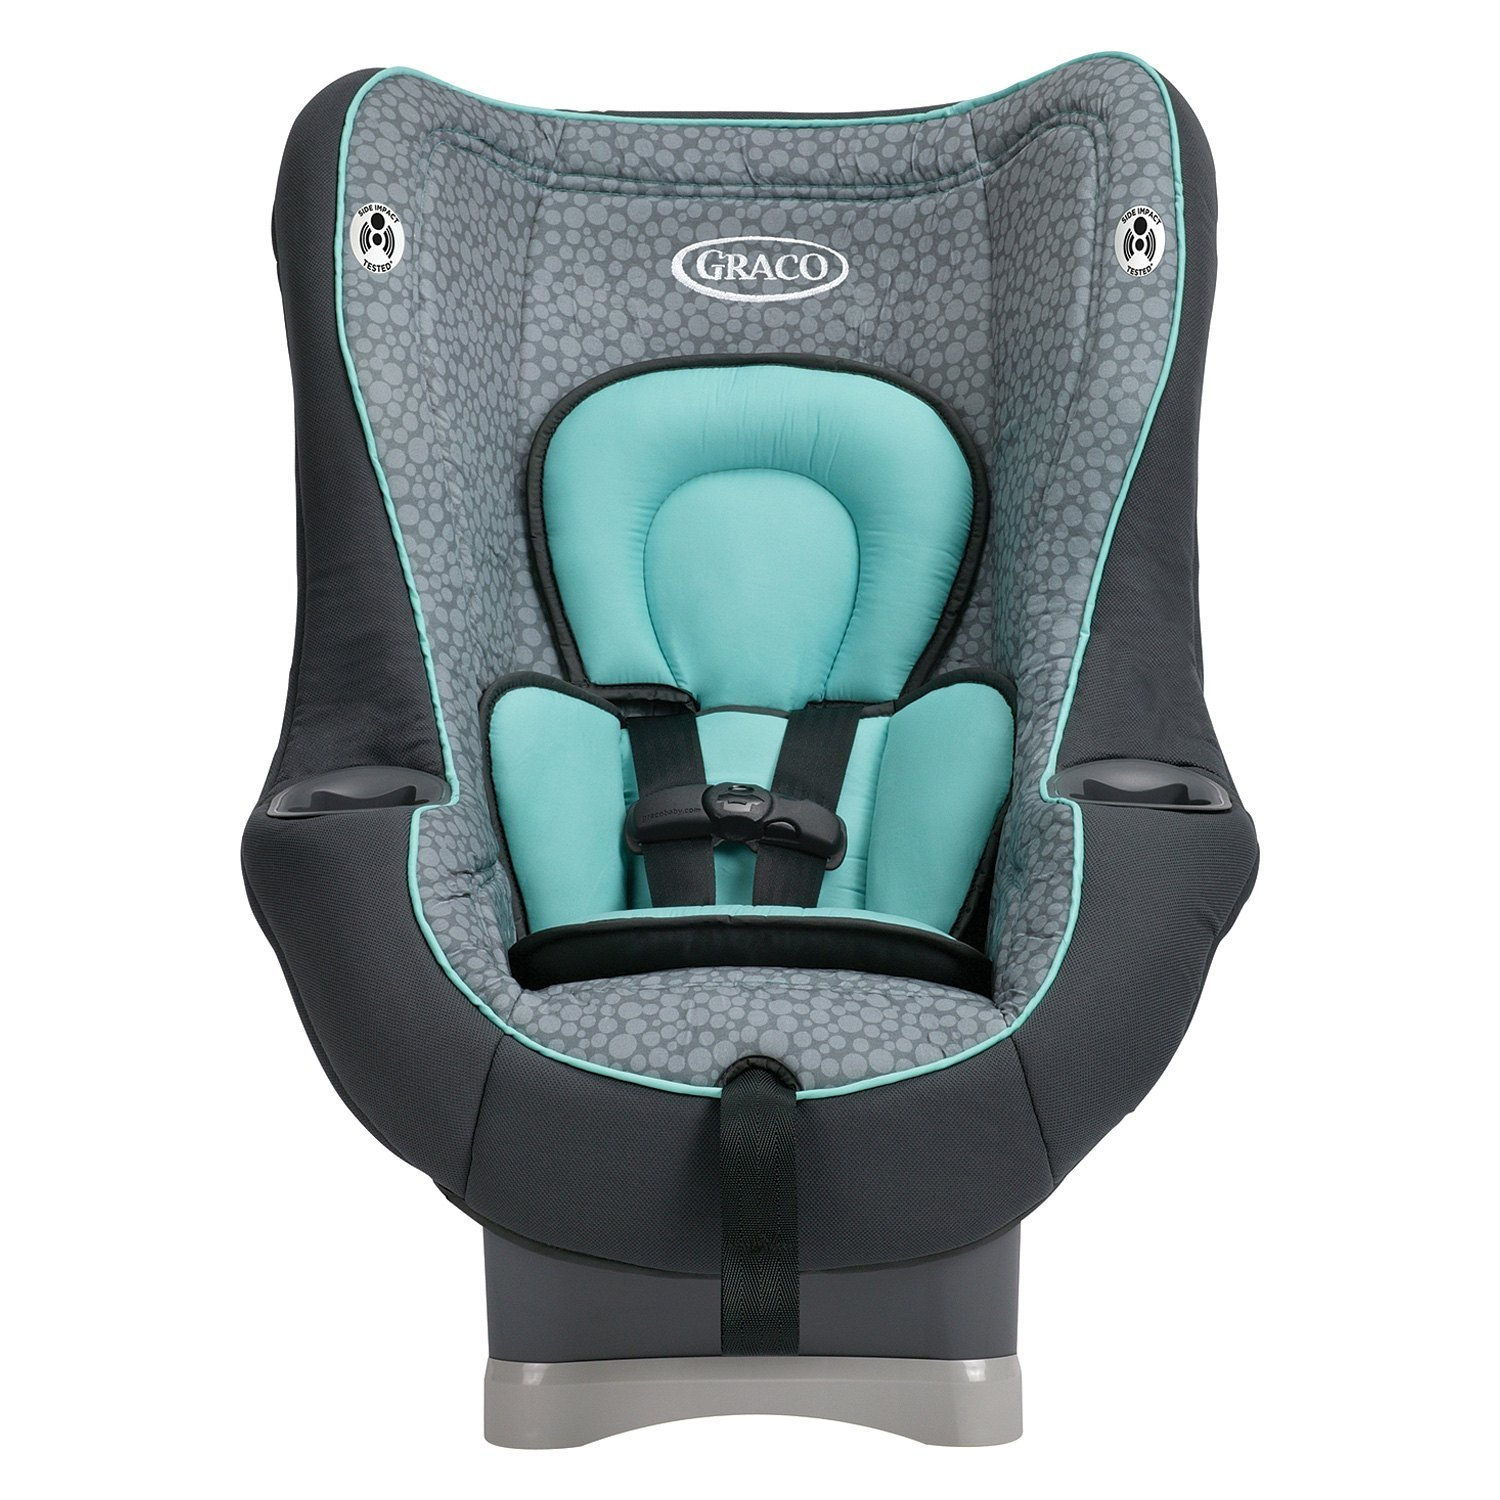 Graco Baby My Ride Sully Style 65 Convertible Car